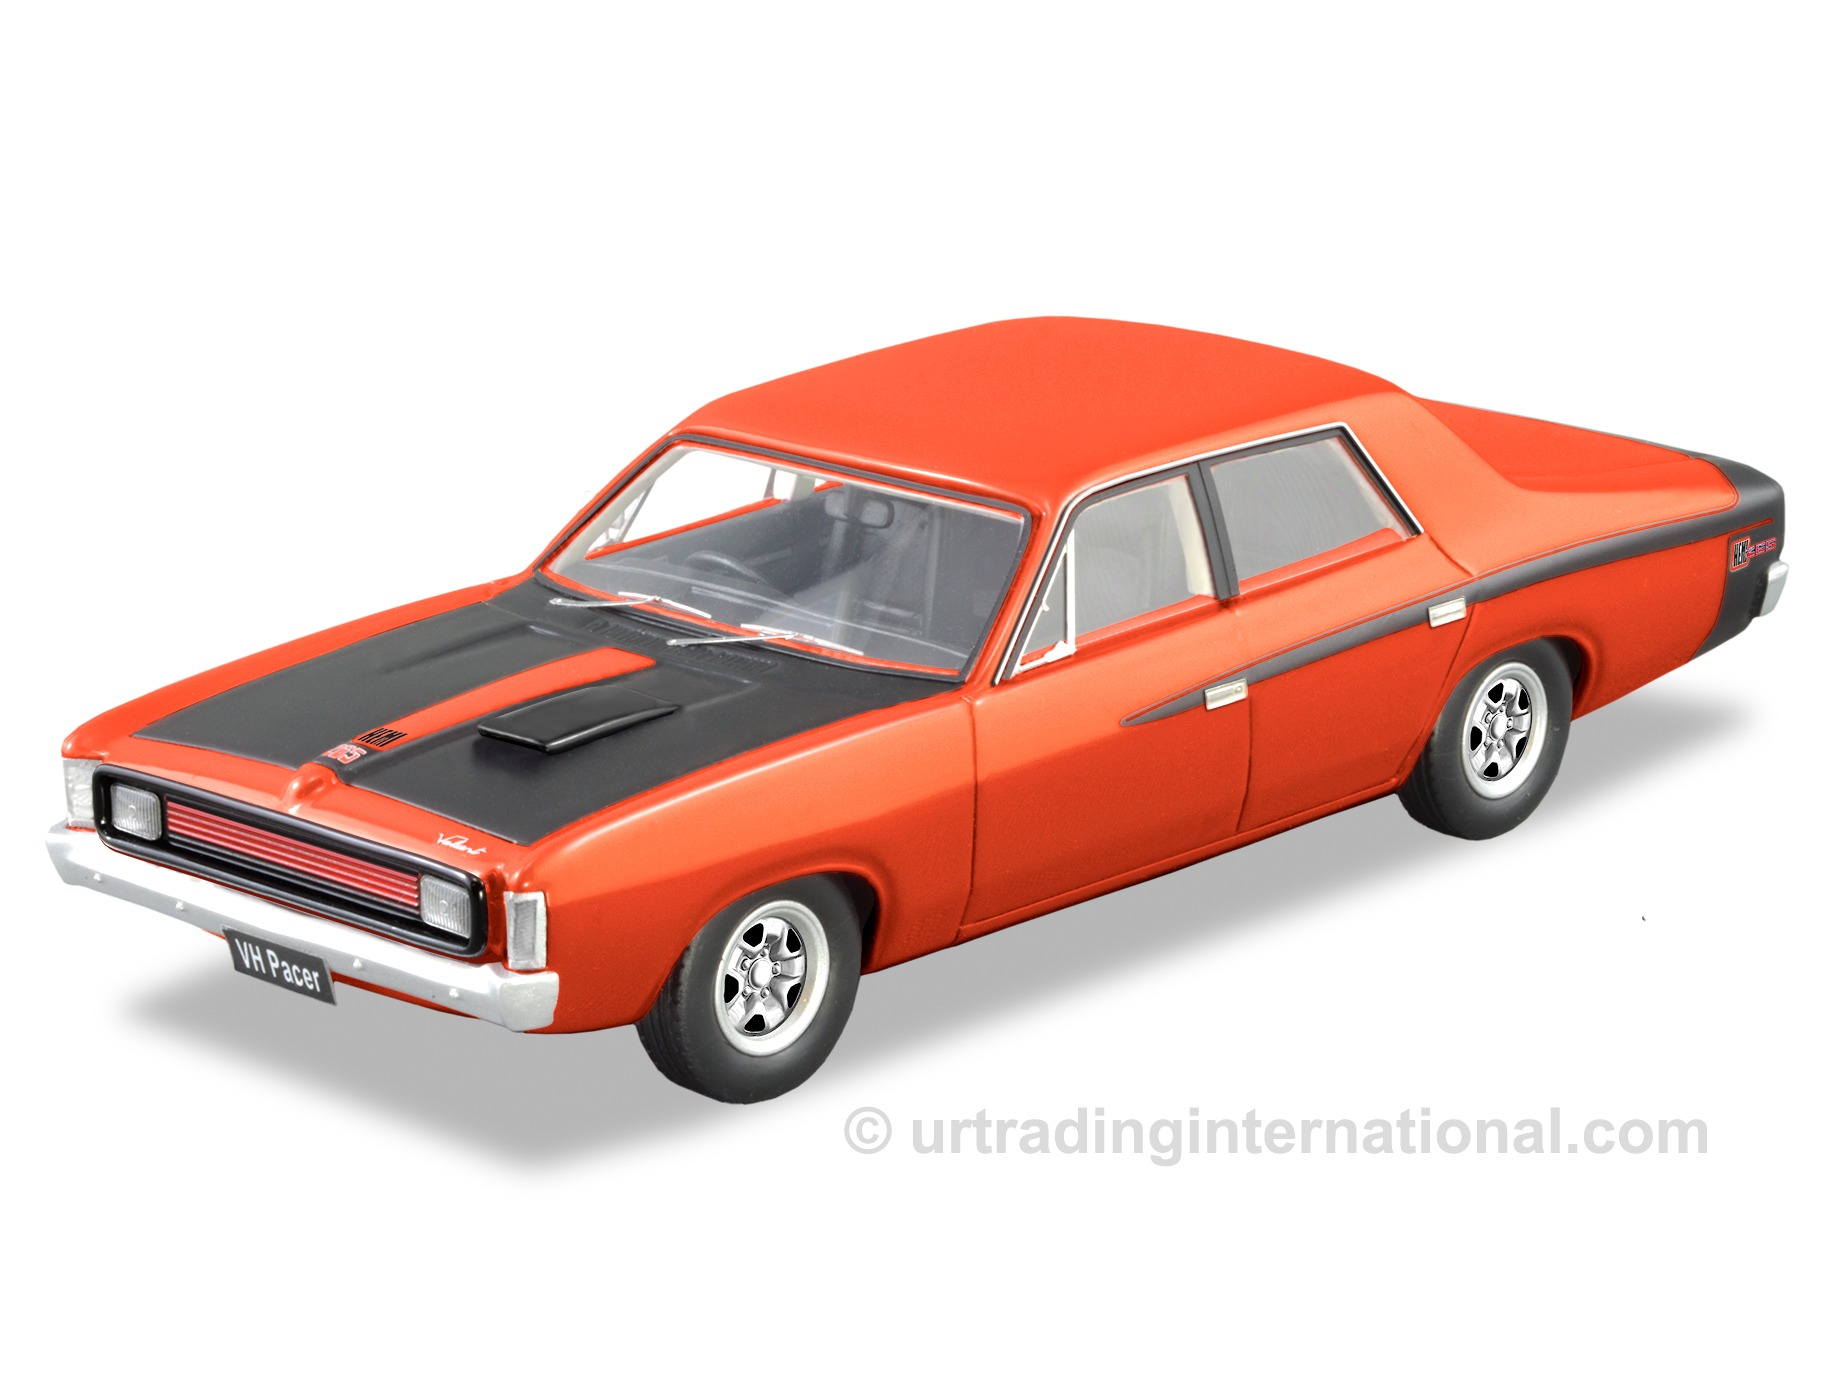 1972 Valiant VH Pacer – Hemi Orange